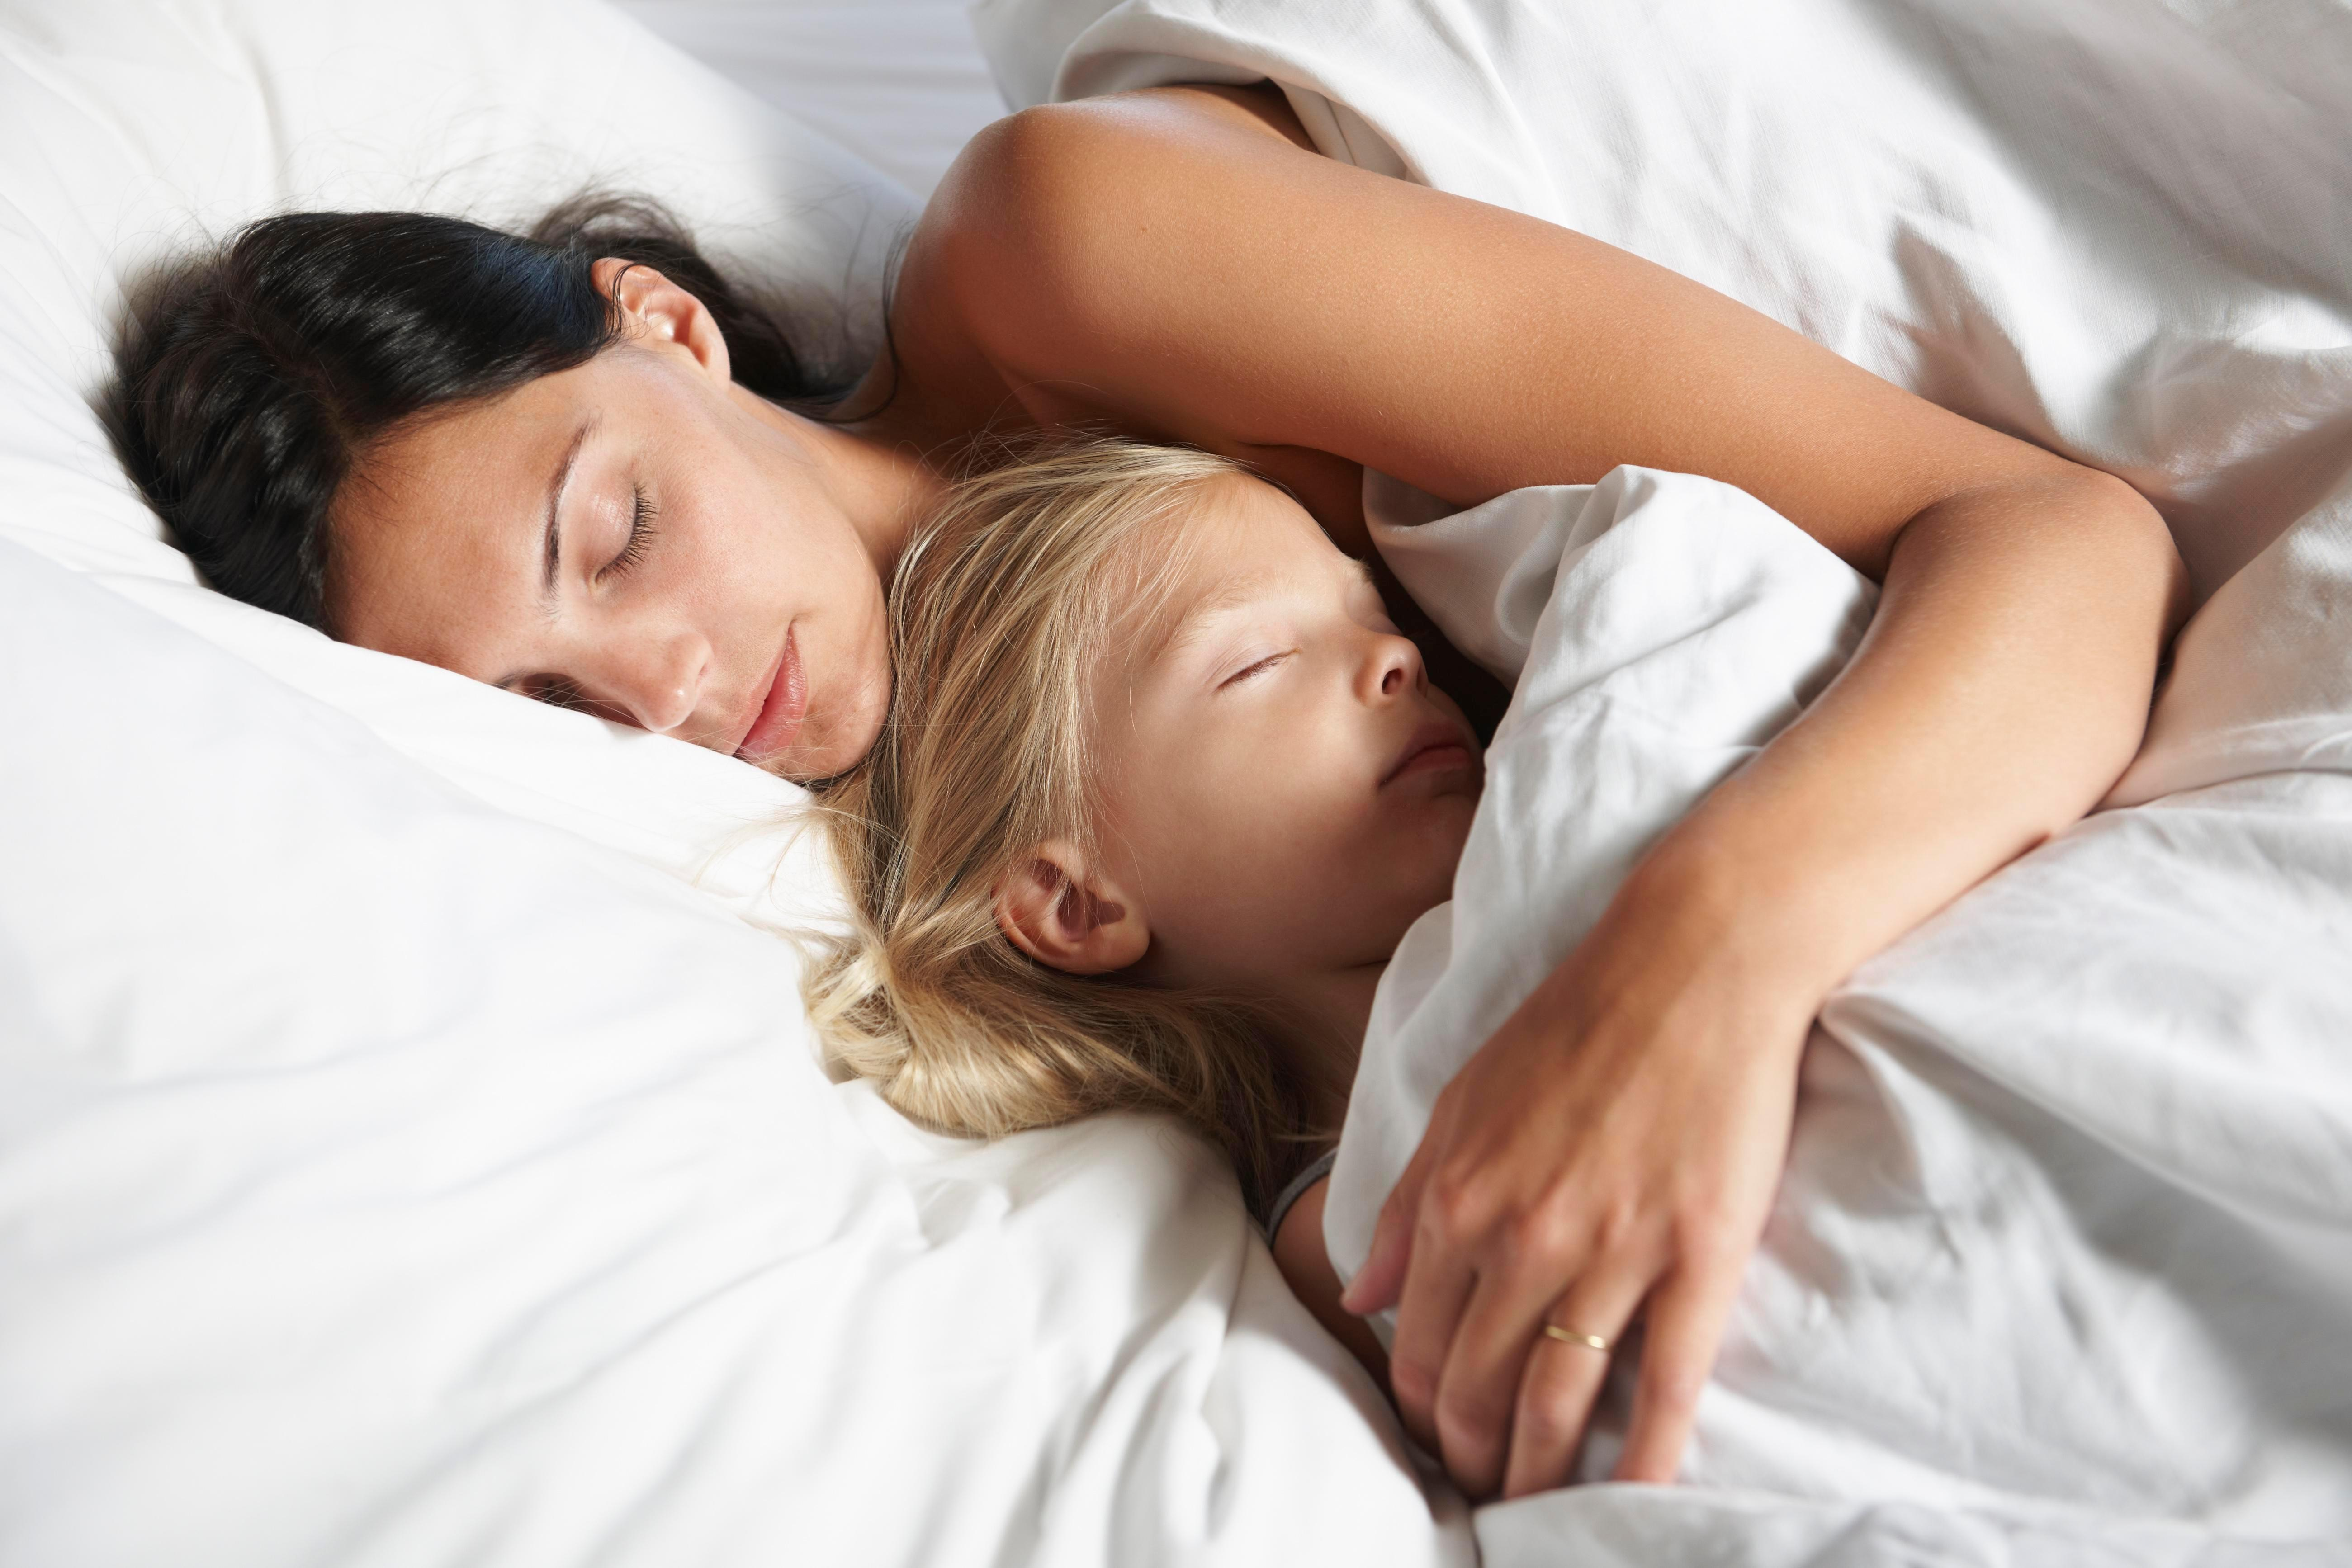 Scientists claim lying down with your kids until they fall asleep is GOOD for them and can reduce mental health problems later in life